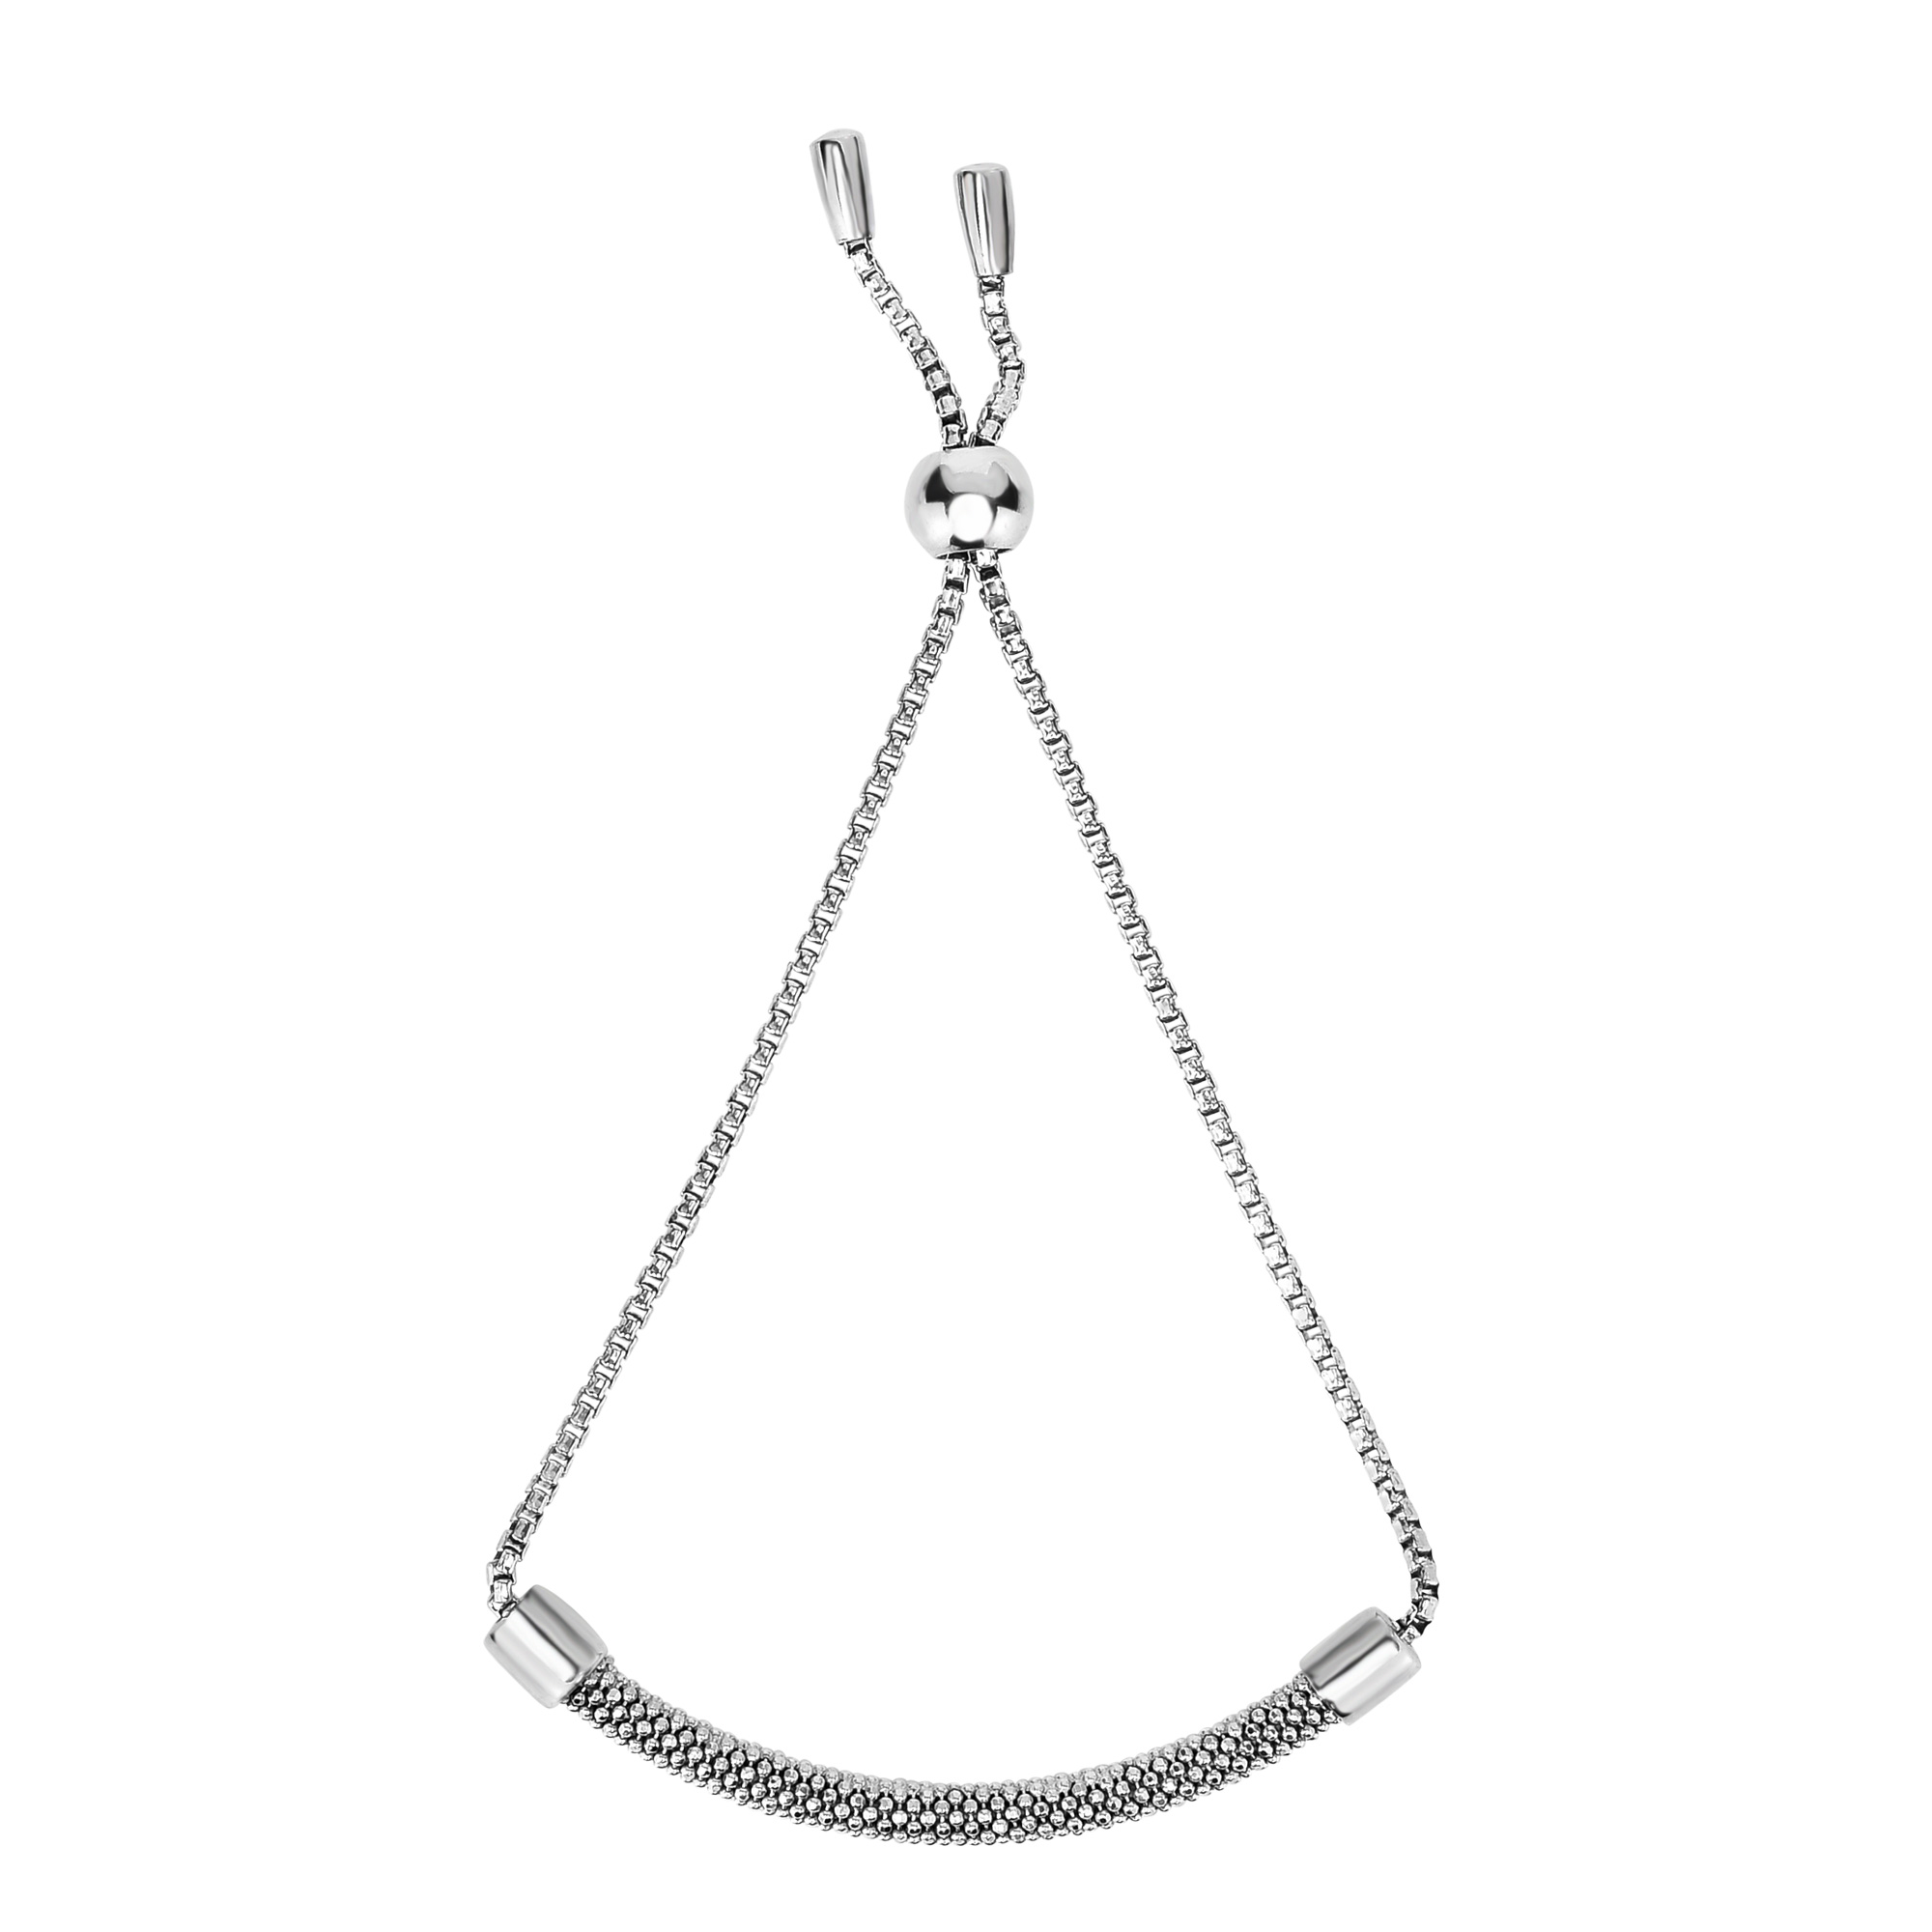 Sterling Silver Diamond Cut Beaded Bar Adjustable Bolo Friendship Bracelet , 9.25  Designed for today's fast-moving, contemporary woman, the Friendship bracelets are smart, stylish and easy to wear. Meticulously executed in high quality Rhodium plated sterling silver, these iconic bracelets are easily adjusted to fit any wrist. The Adjustable sliding closure allows you to go from 9.25 inches length to as small as allowed by the design.  Each unique style of our Friendship collection looks beautiful worn as one piece alone or stacked with multiple styles for a layered and modern look. The bracelet comes in an elegant jewelry gift box, perfect for any gift giving occasion.